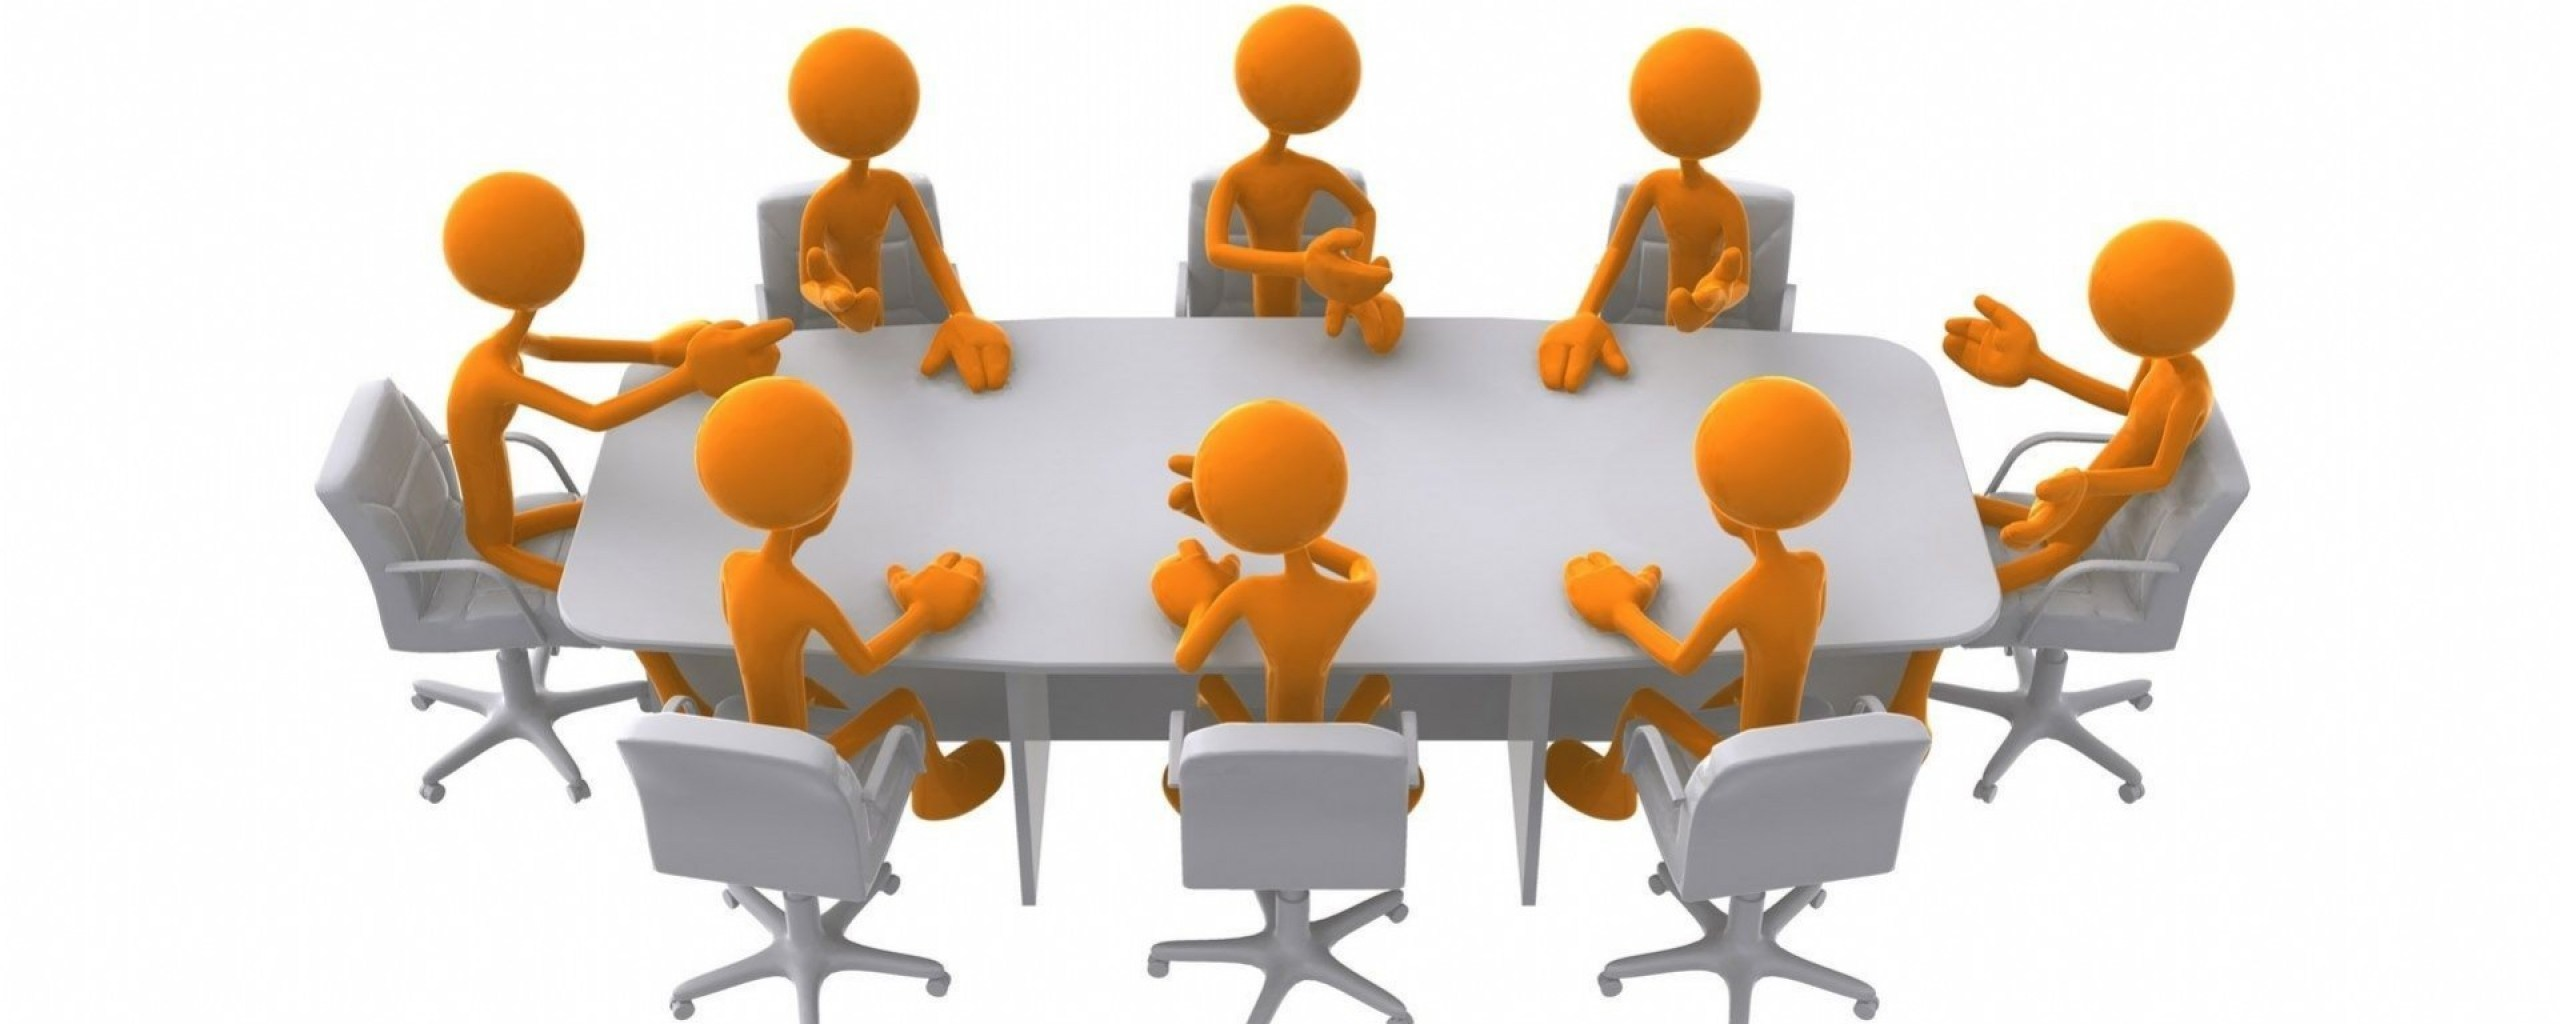 Business meeting clipart free 8 » Clipart Portal.